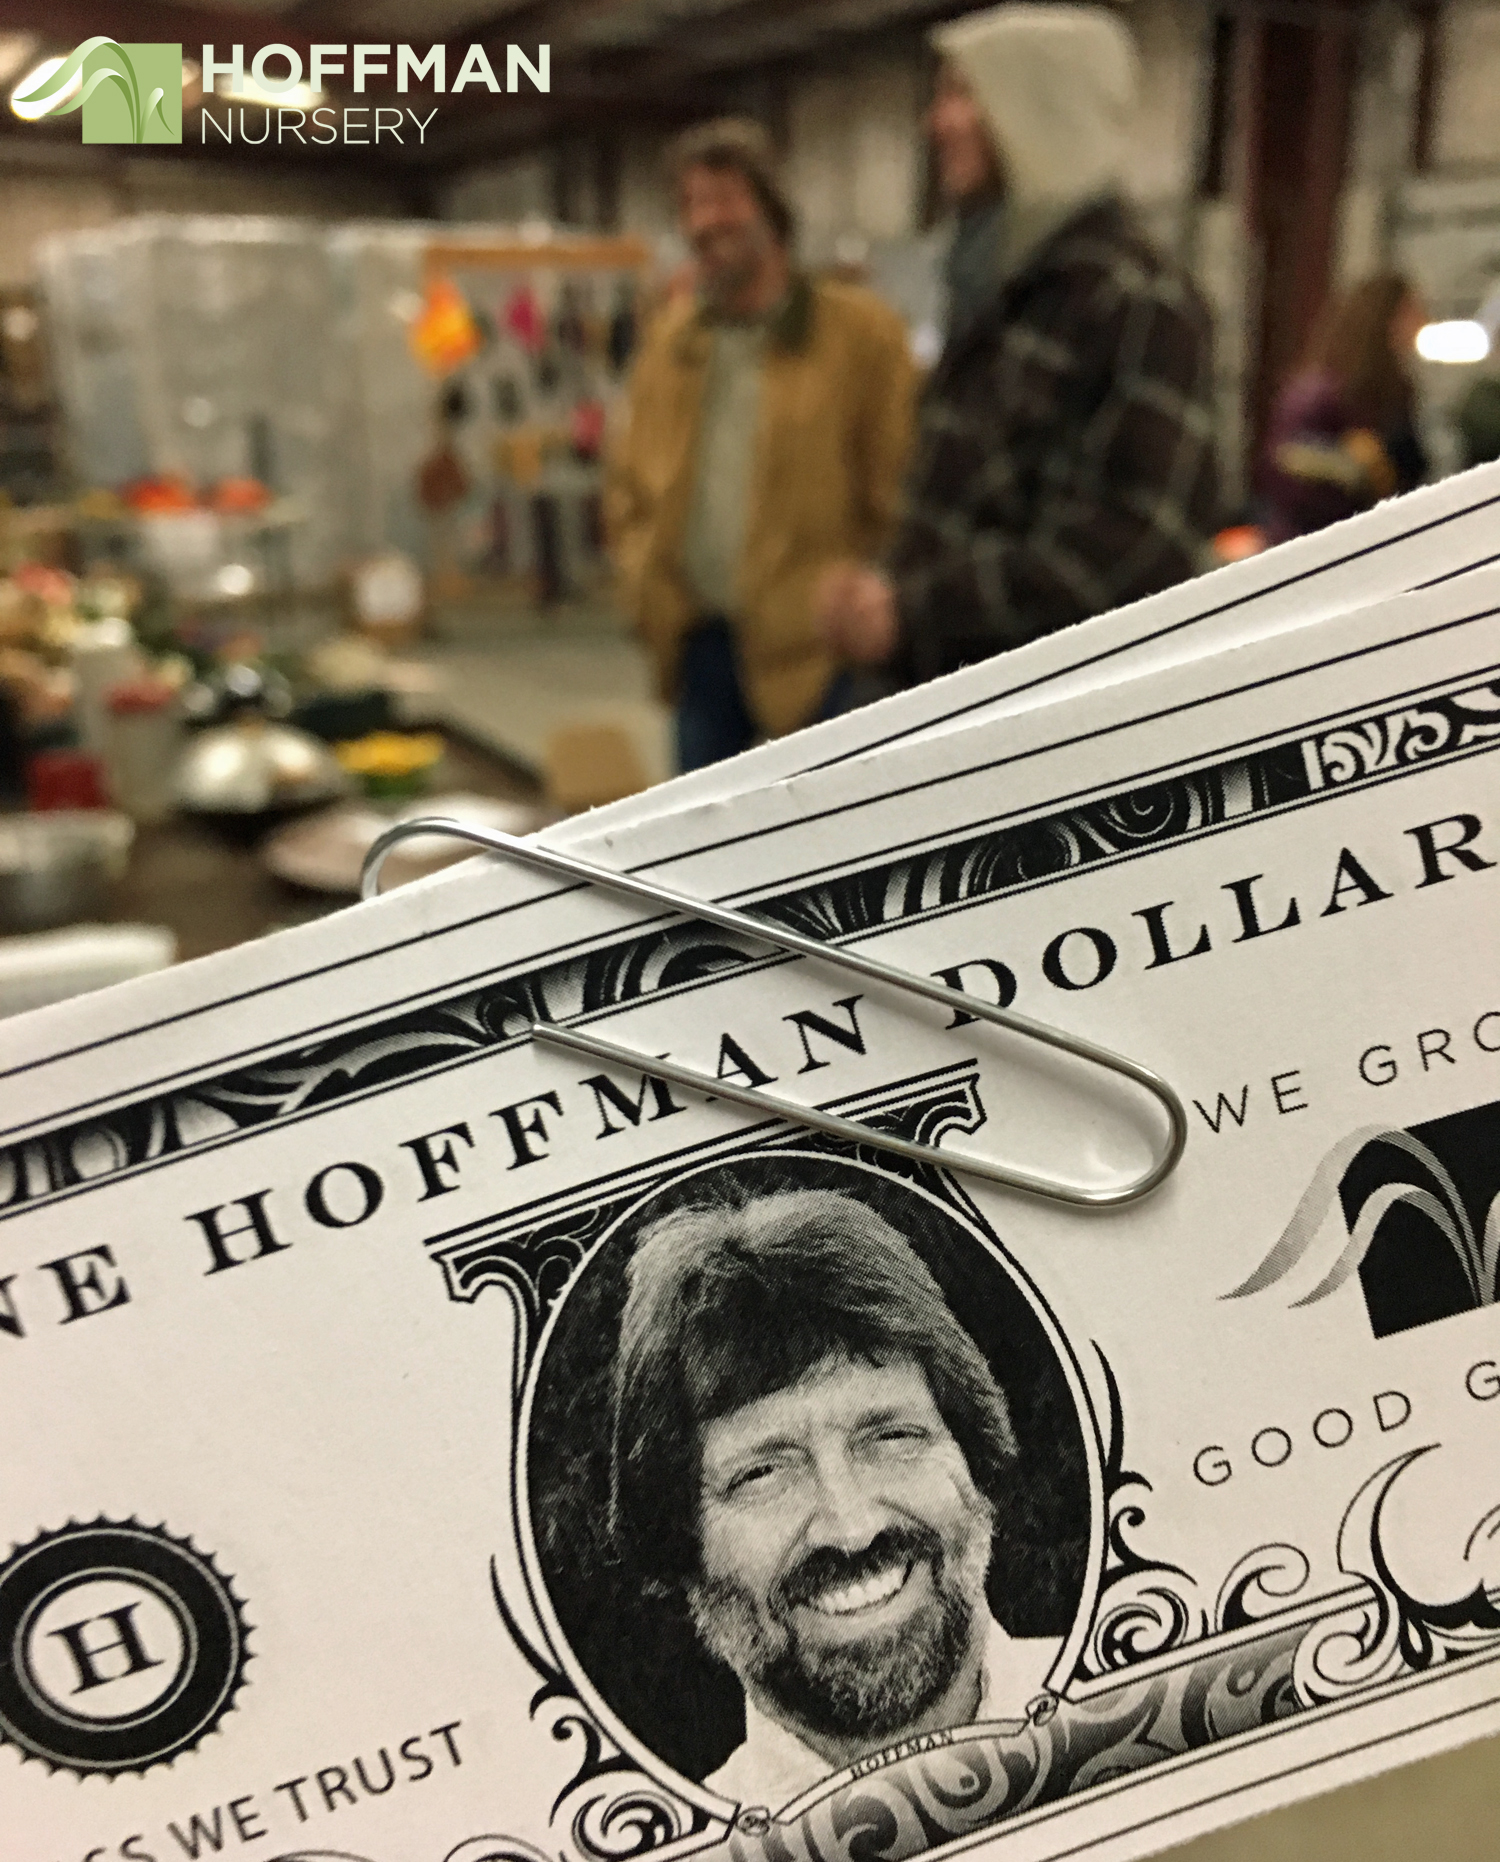 One of the highlights of the market was giving John Hoffman a gentle ribbing about the Hoffman Bucks.